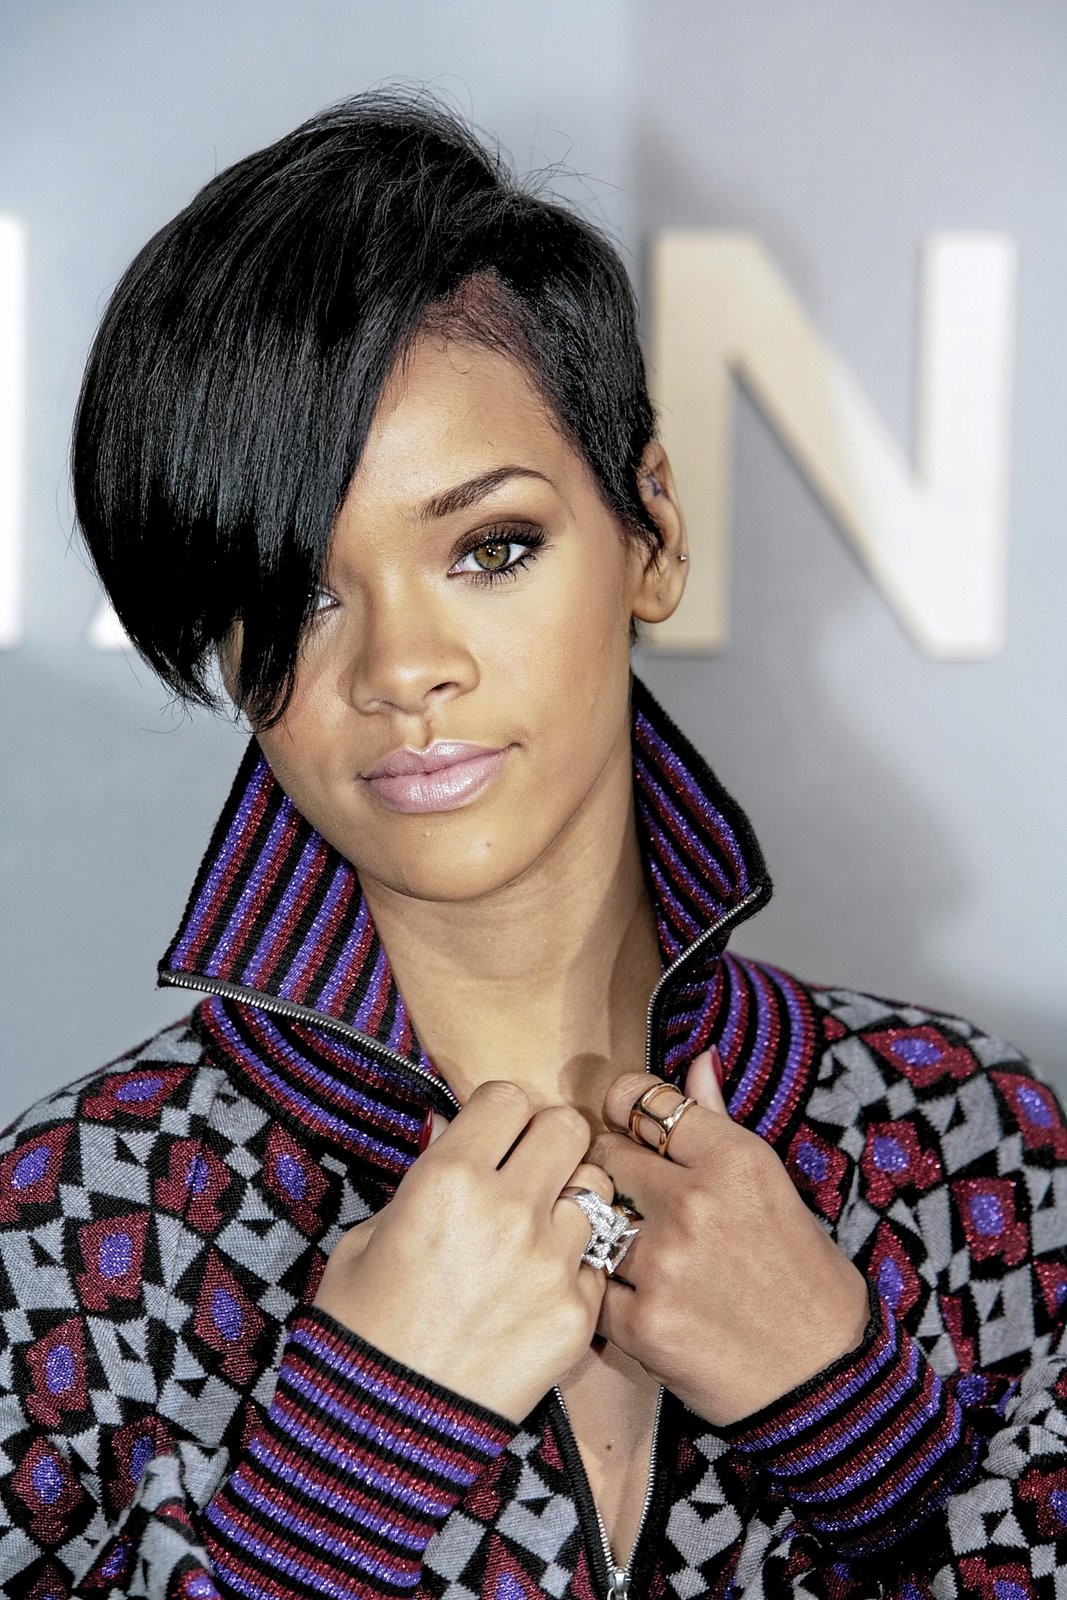 Coollingwood S Black Female Celebrity Hairstyles